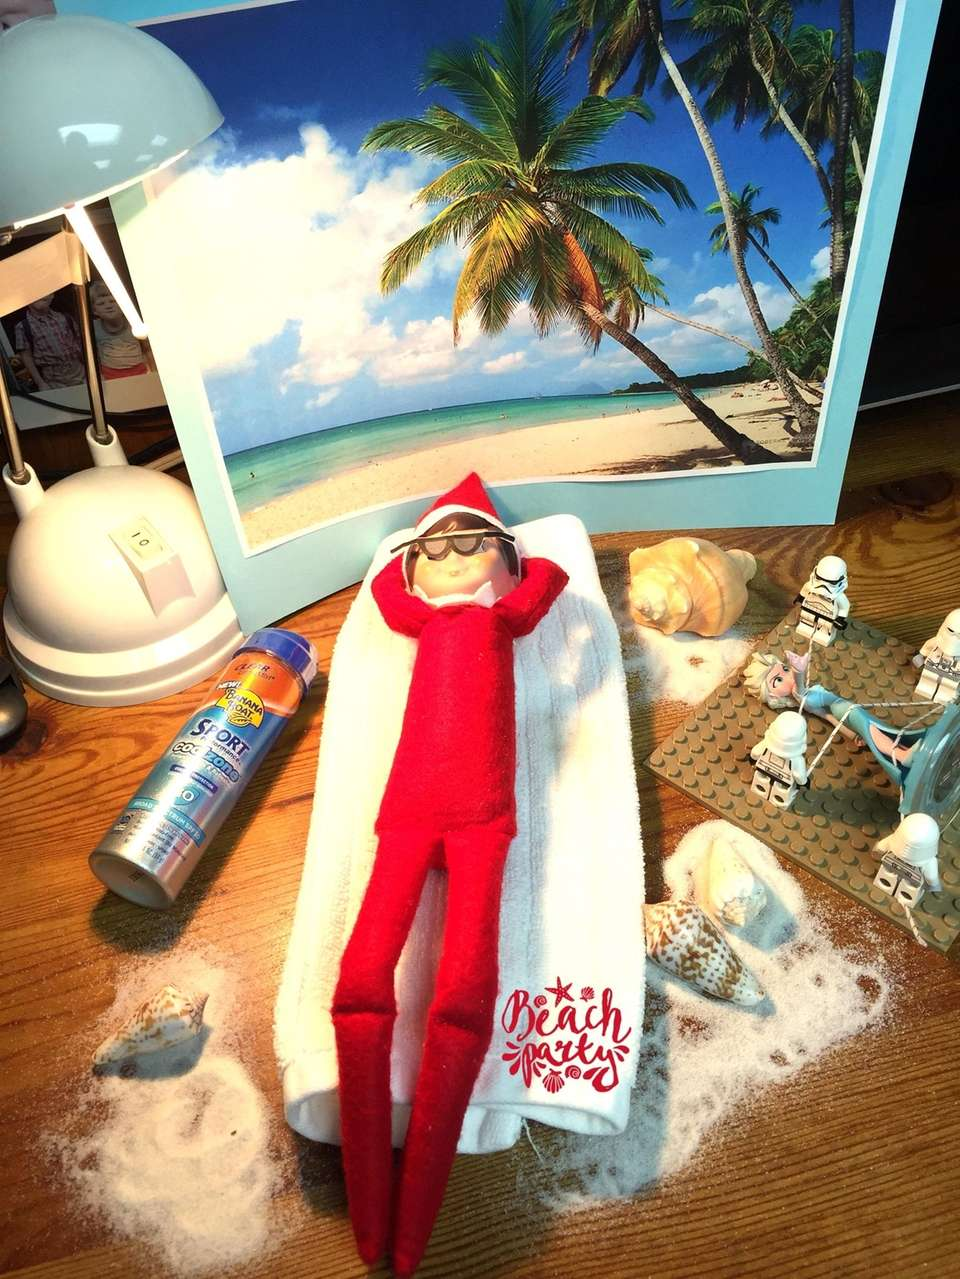 Today elf thinks warm happy thoughts, while Elsa